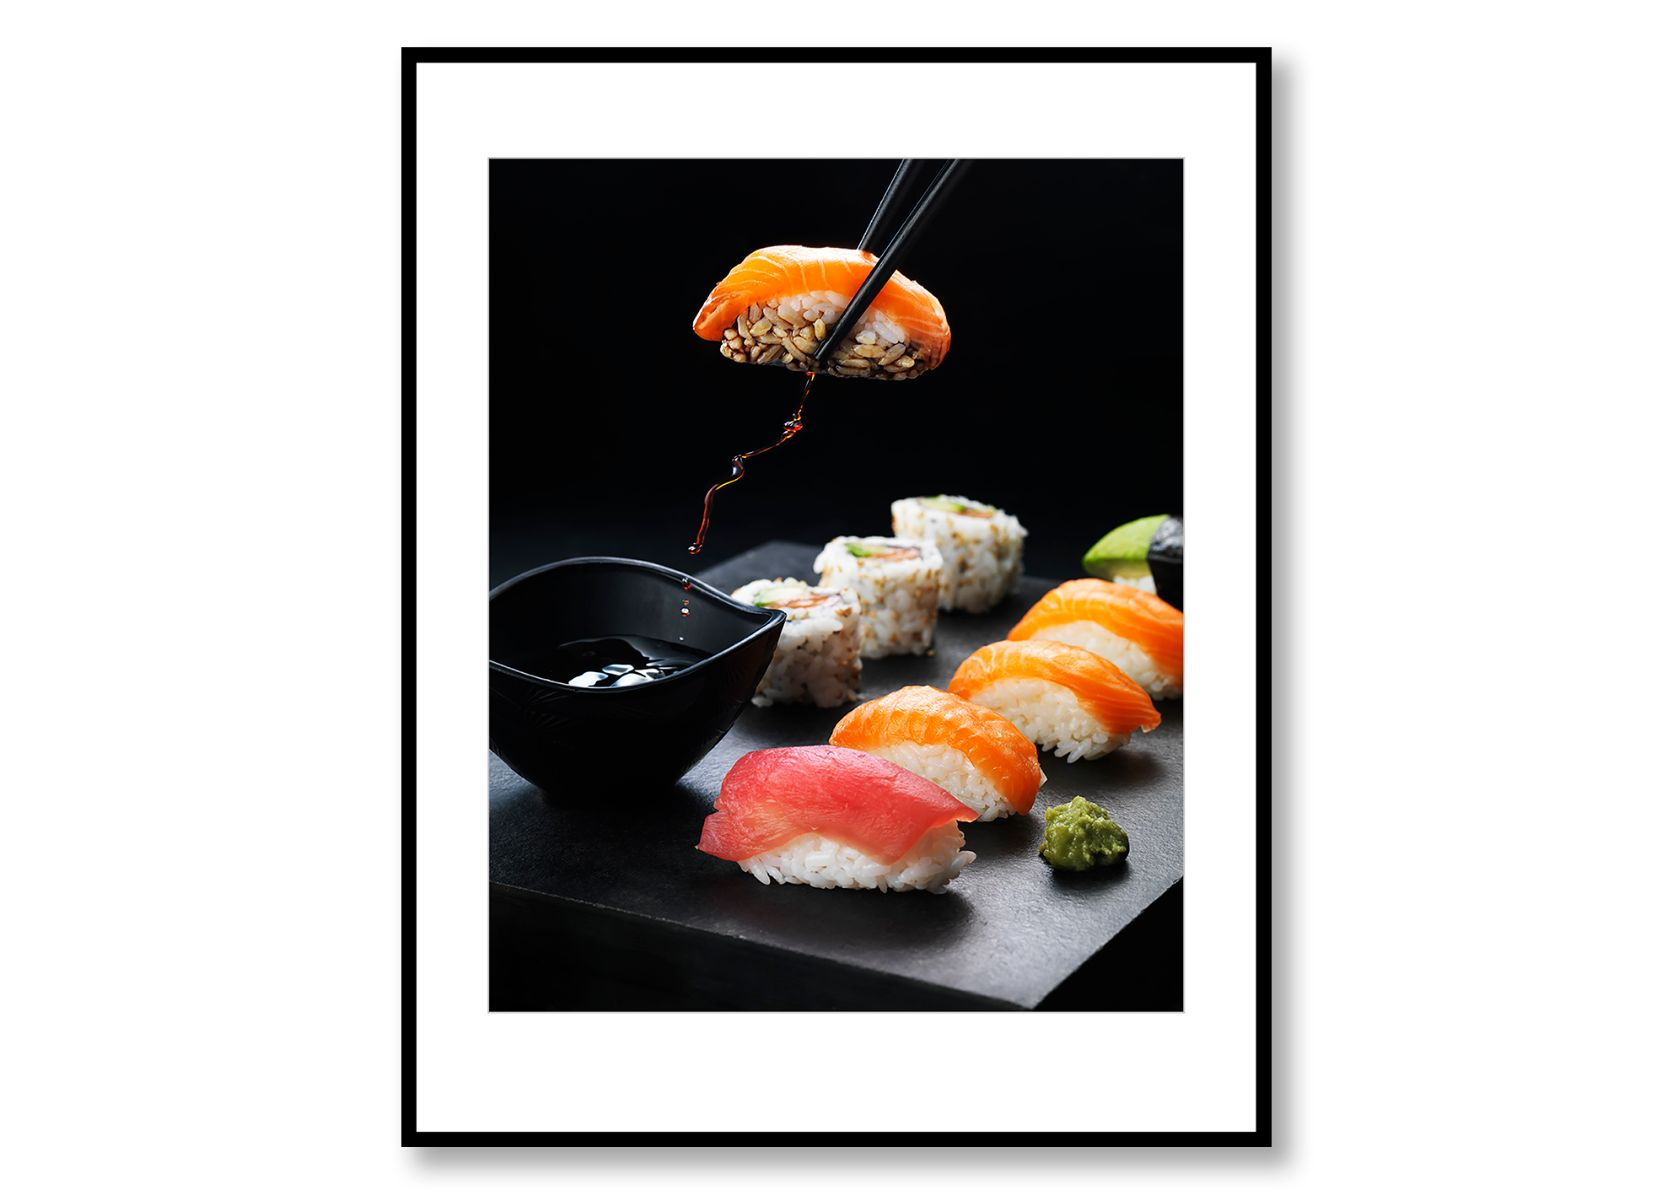 Sushi, Food Art. Prints for sale. Photo by Fredrik Rege